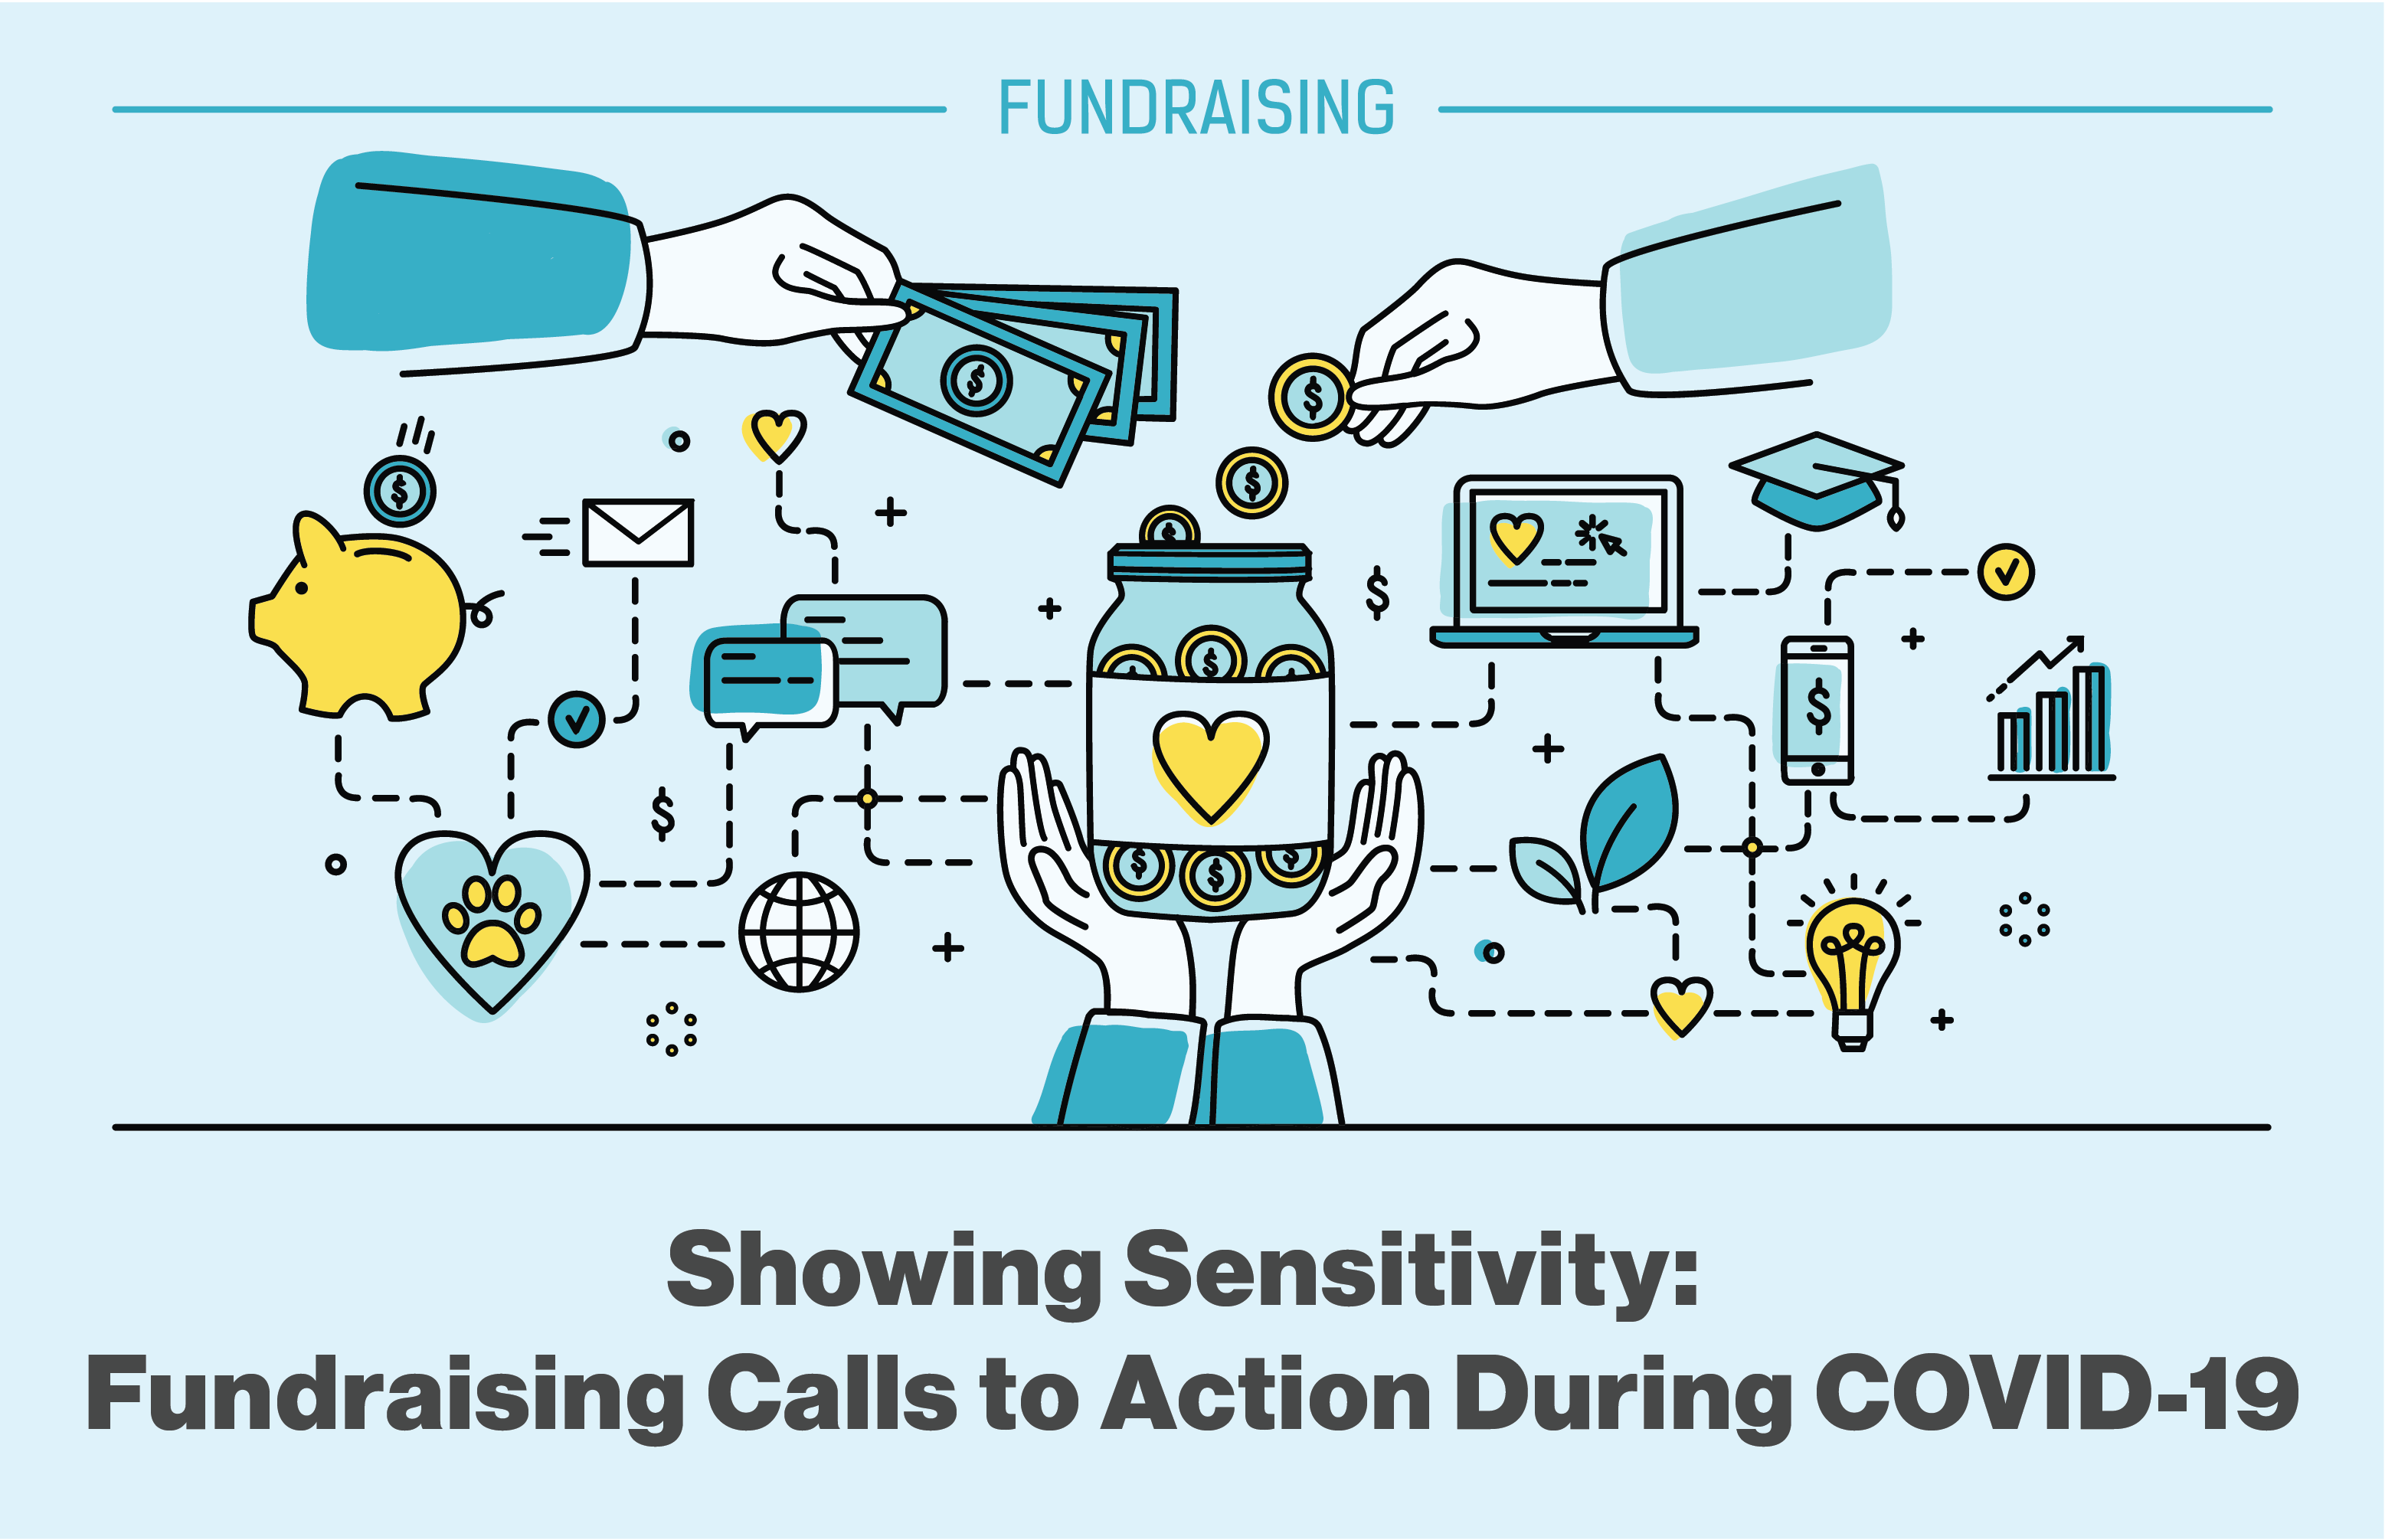 Showing Sensitivity: Fundraising Calls to Action During Covid-19